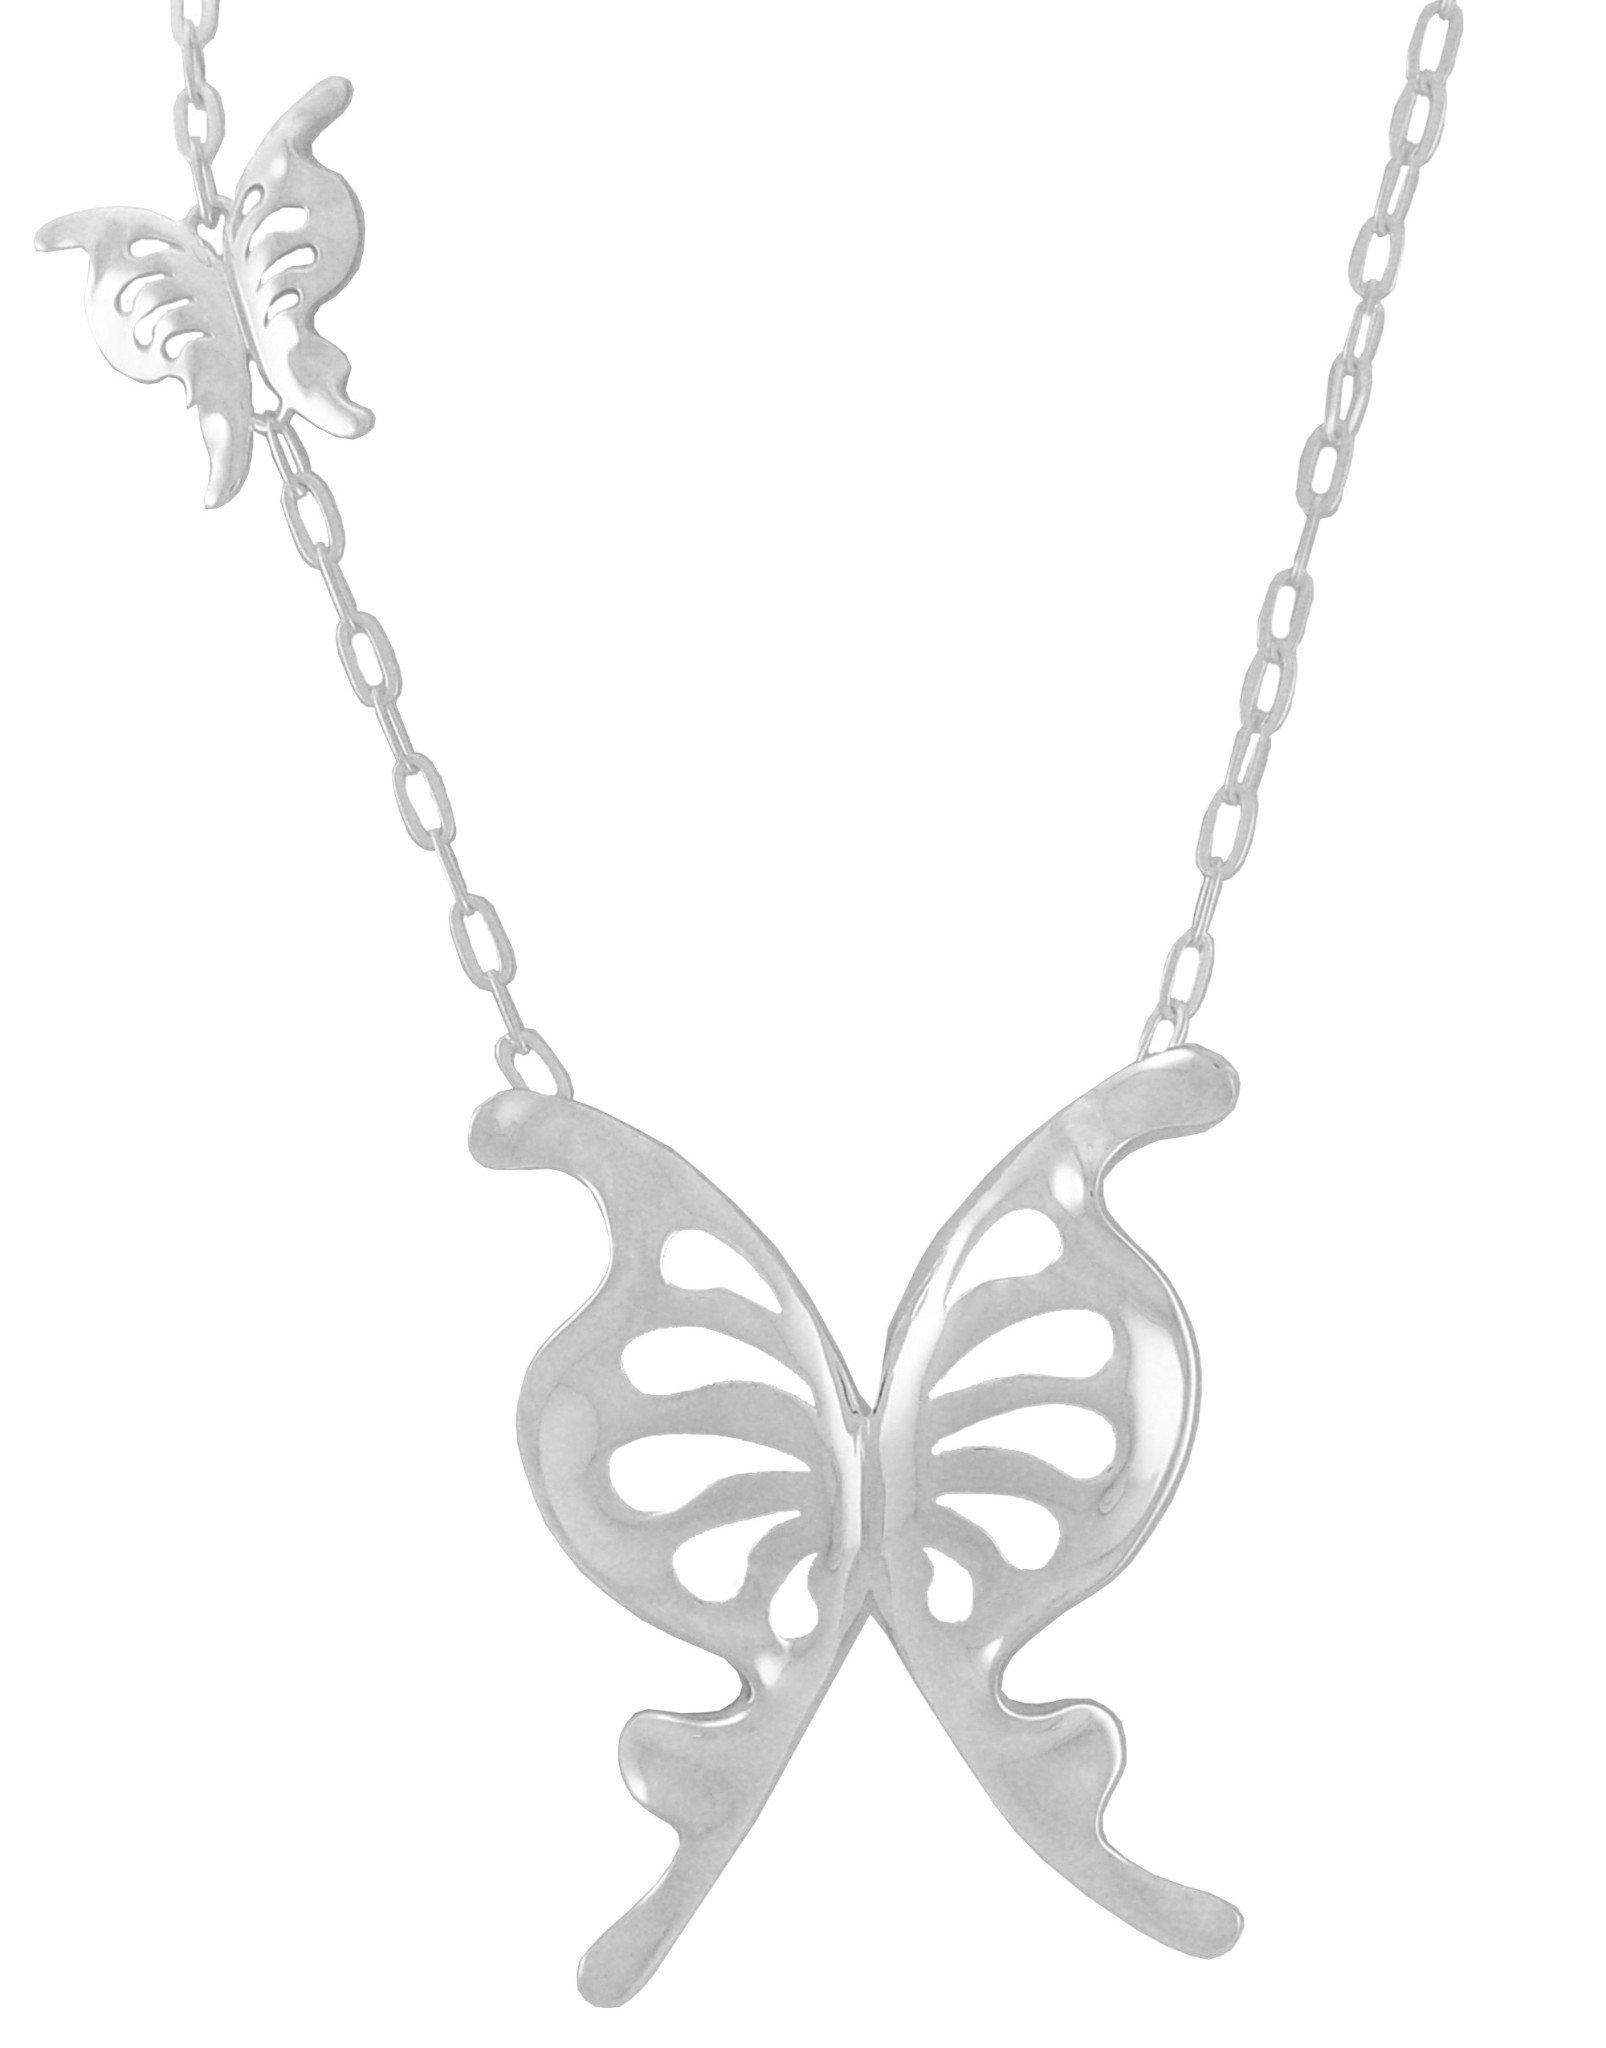 Sterling Silver Butterfly Pendant Charm Necklace